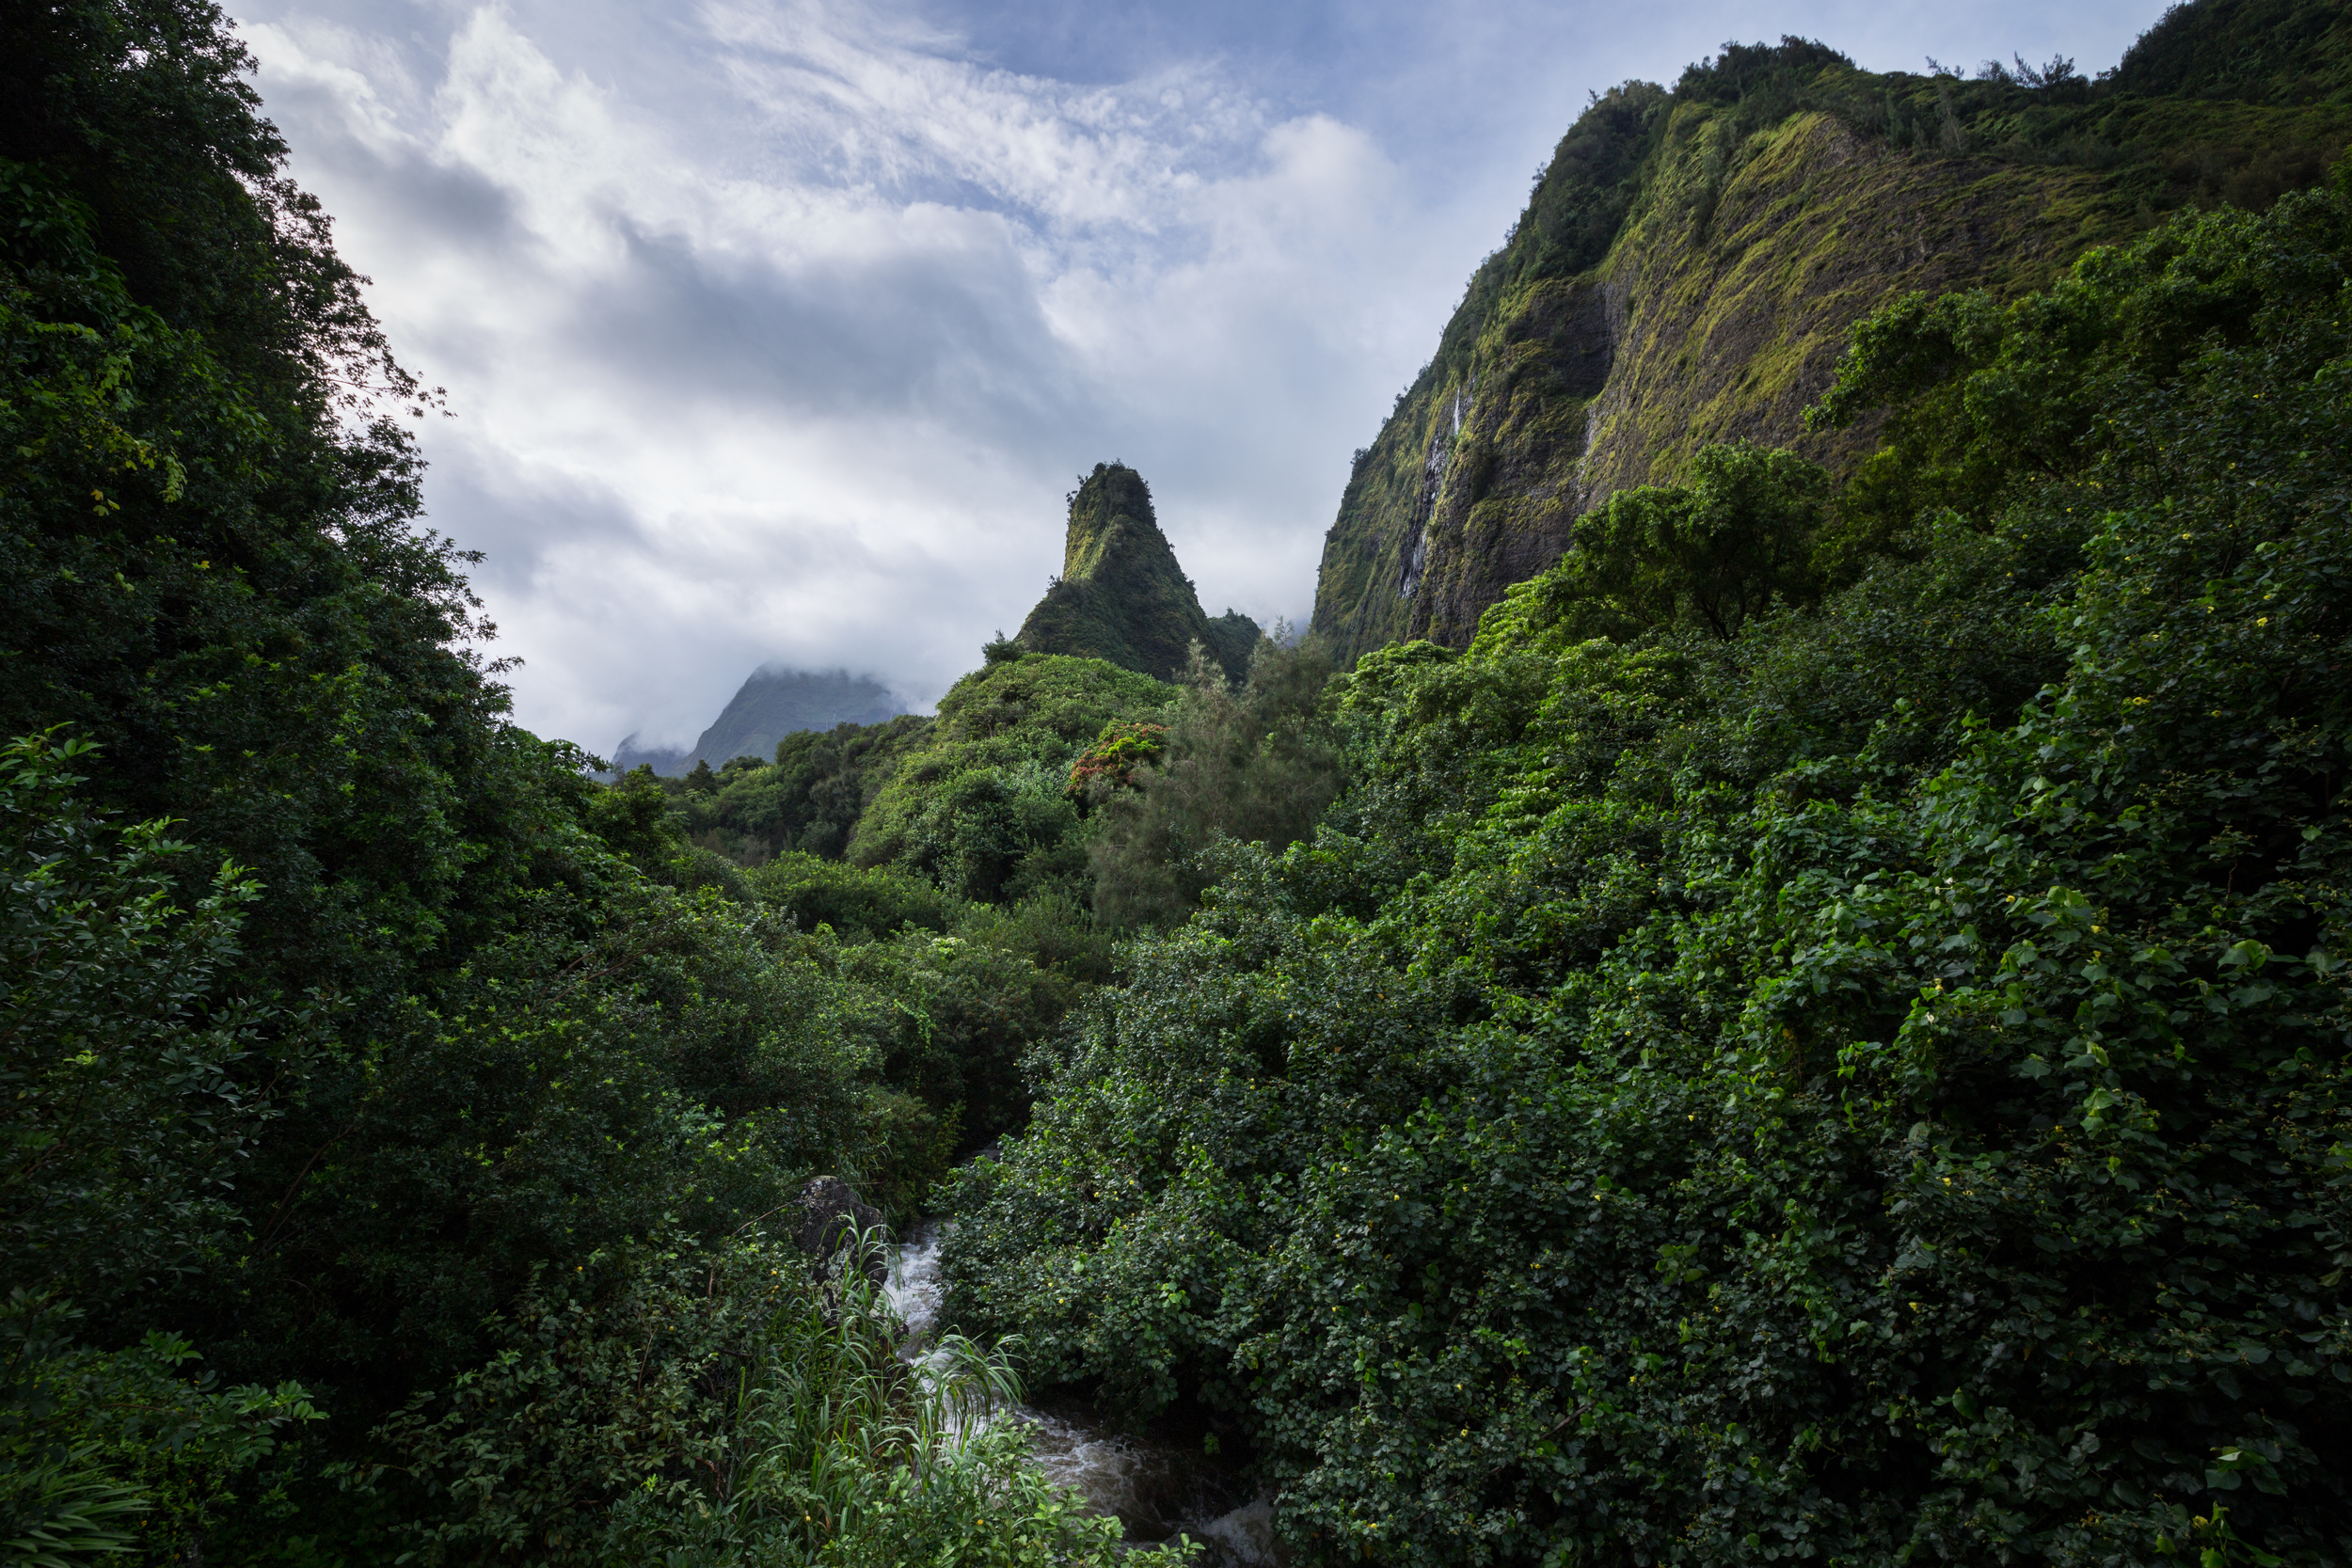 the national parks girl_maui_hawaii_canon6d_iao valley state park_long exposure_waterfall.JPG